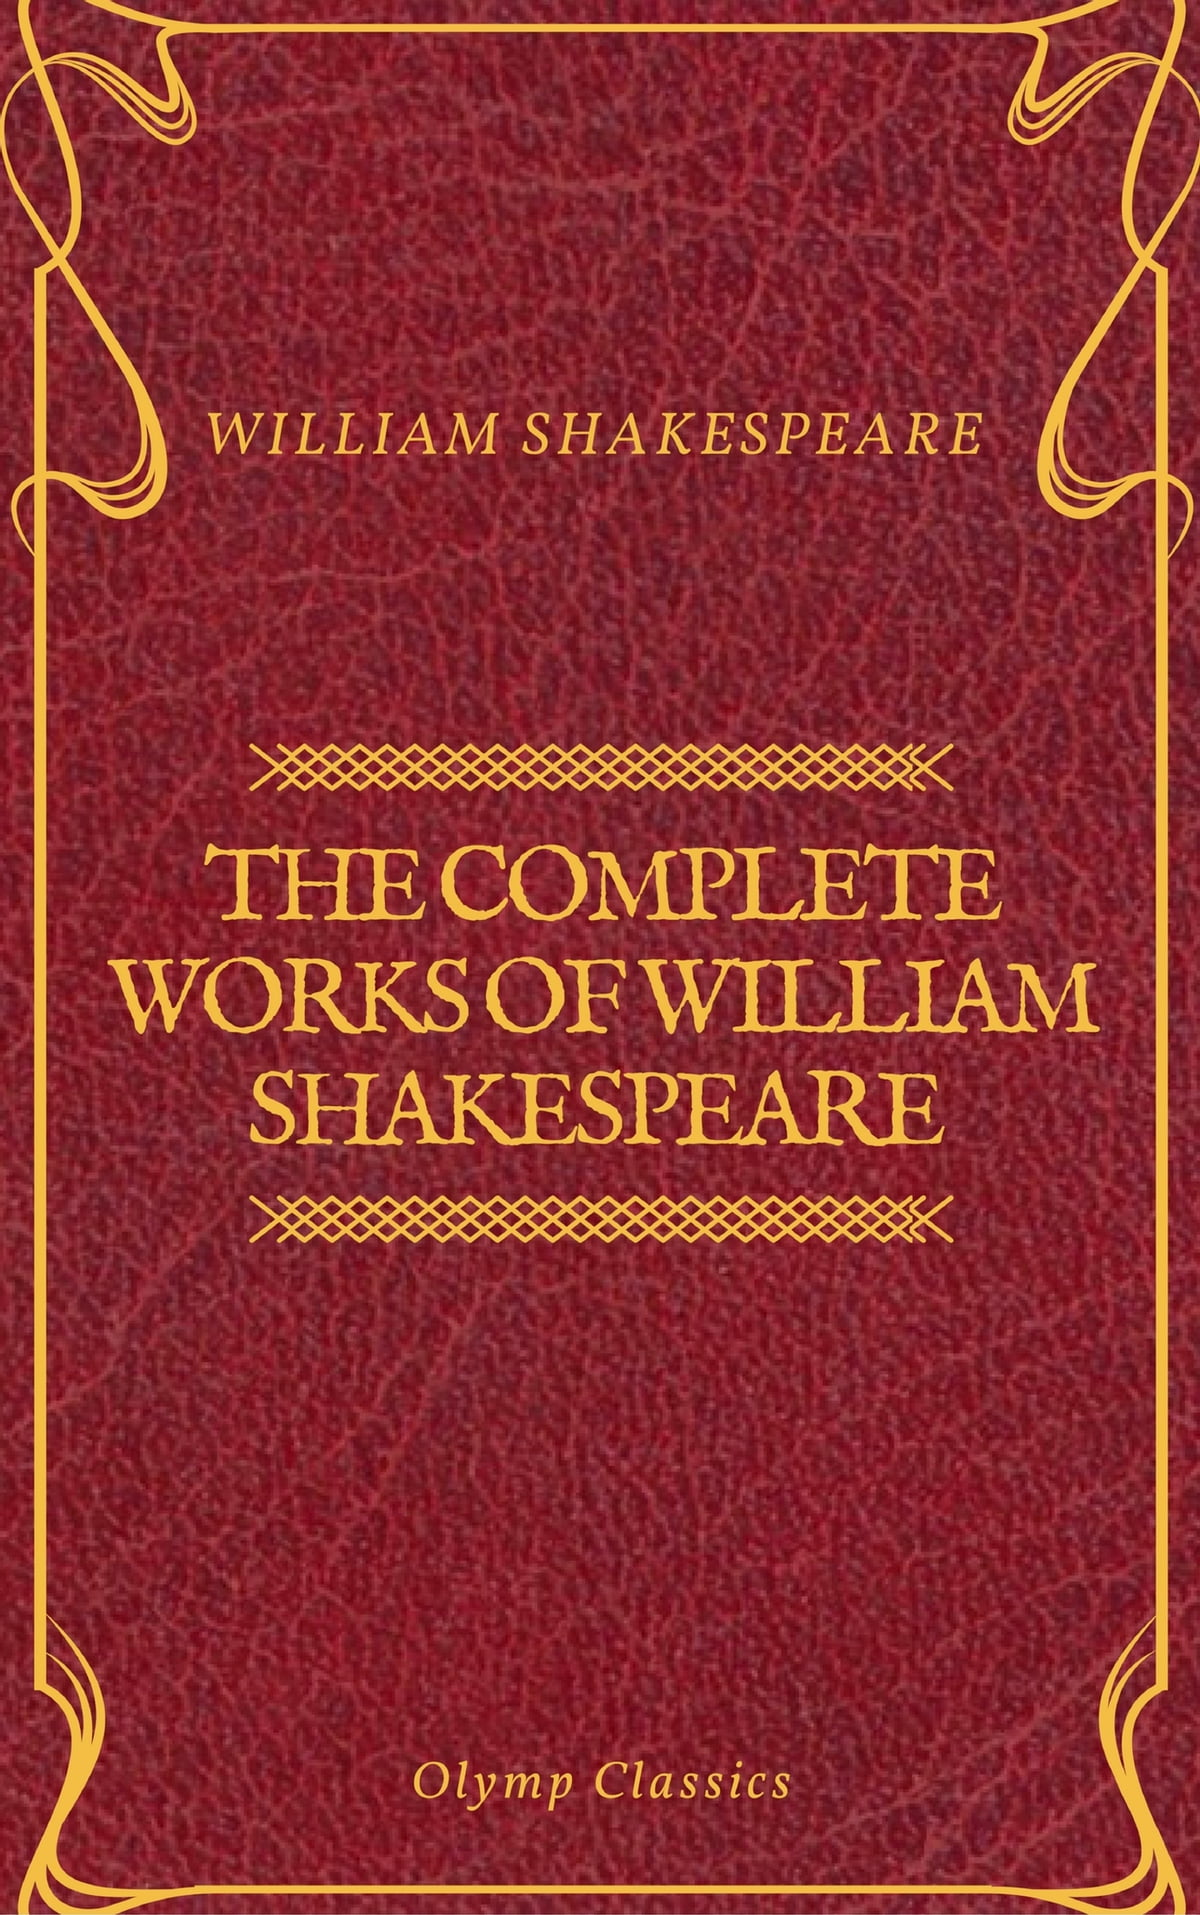 The Complete Works Of William Shakespeare Olymp Classics